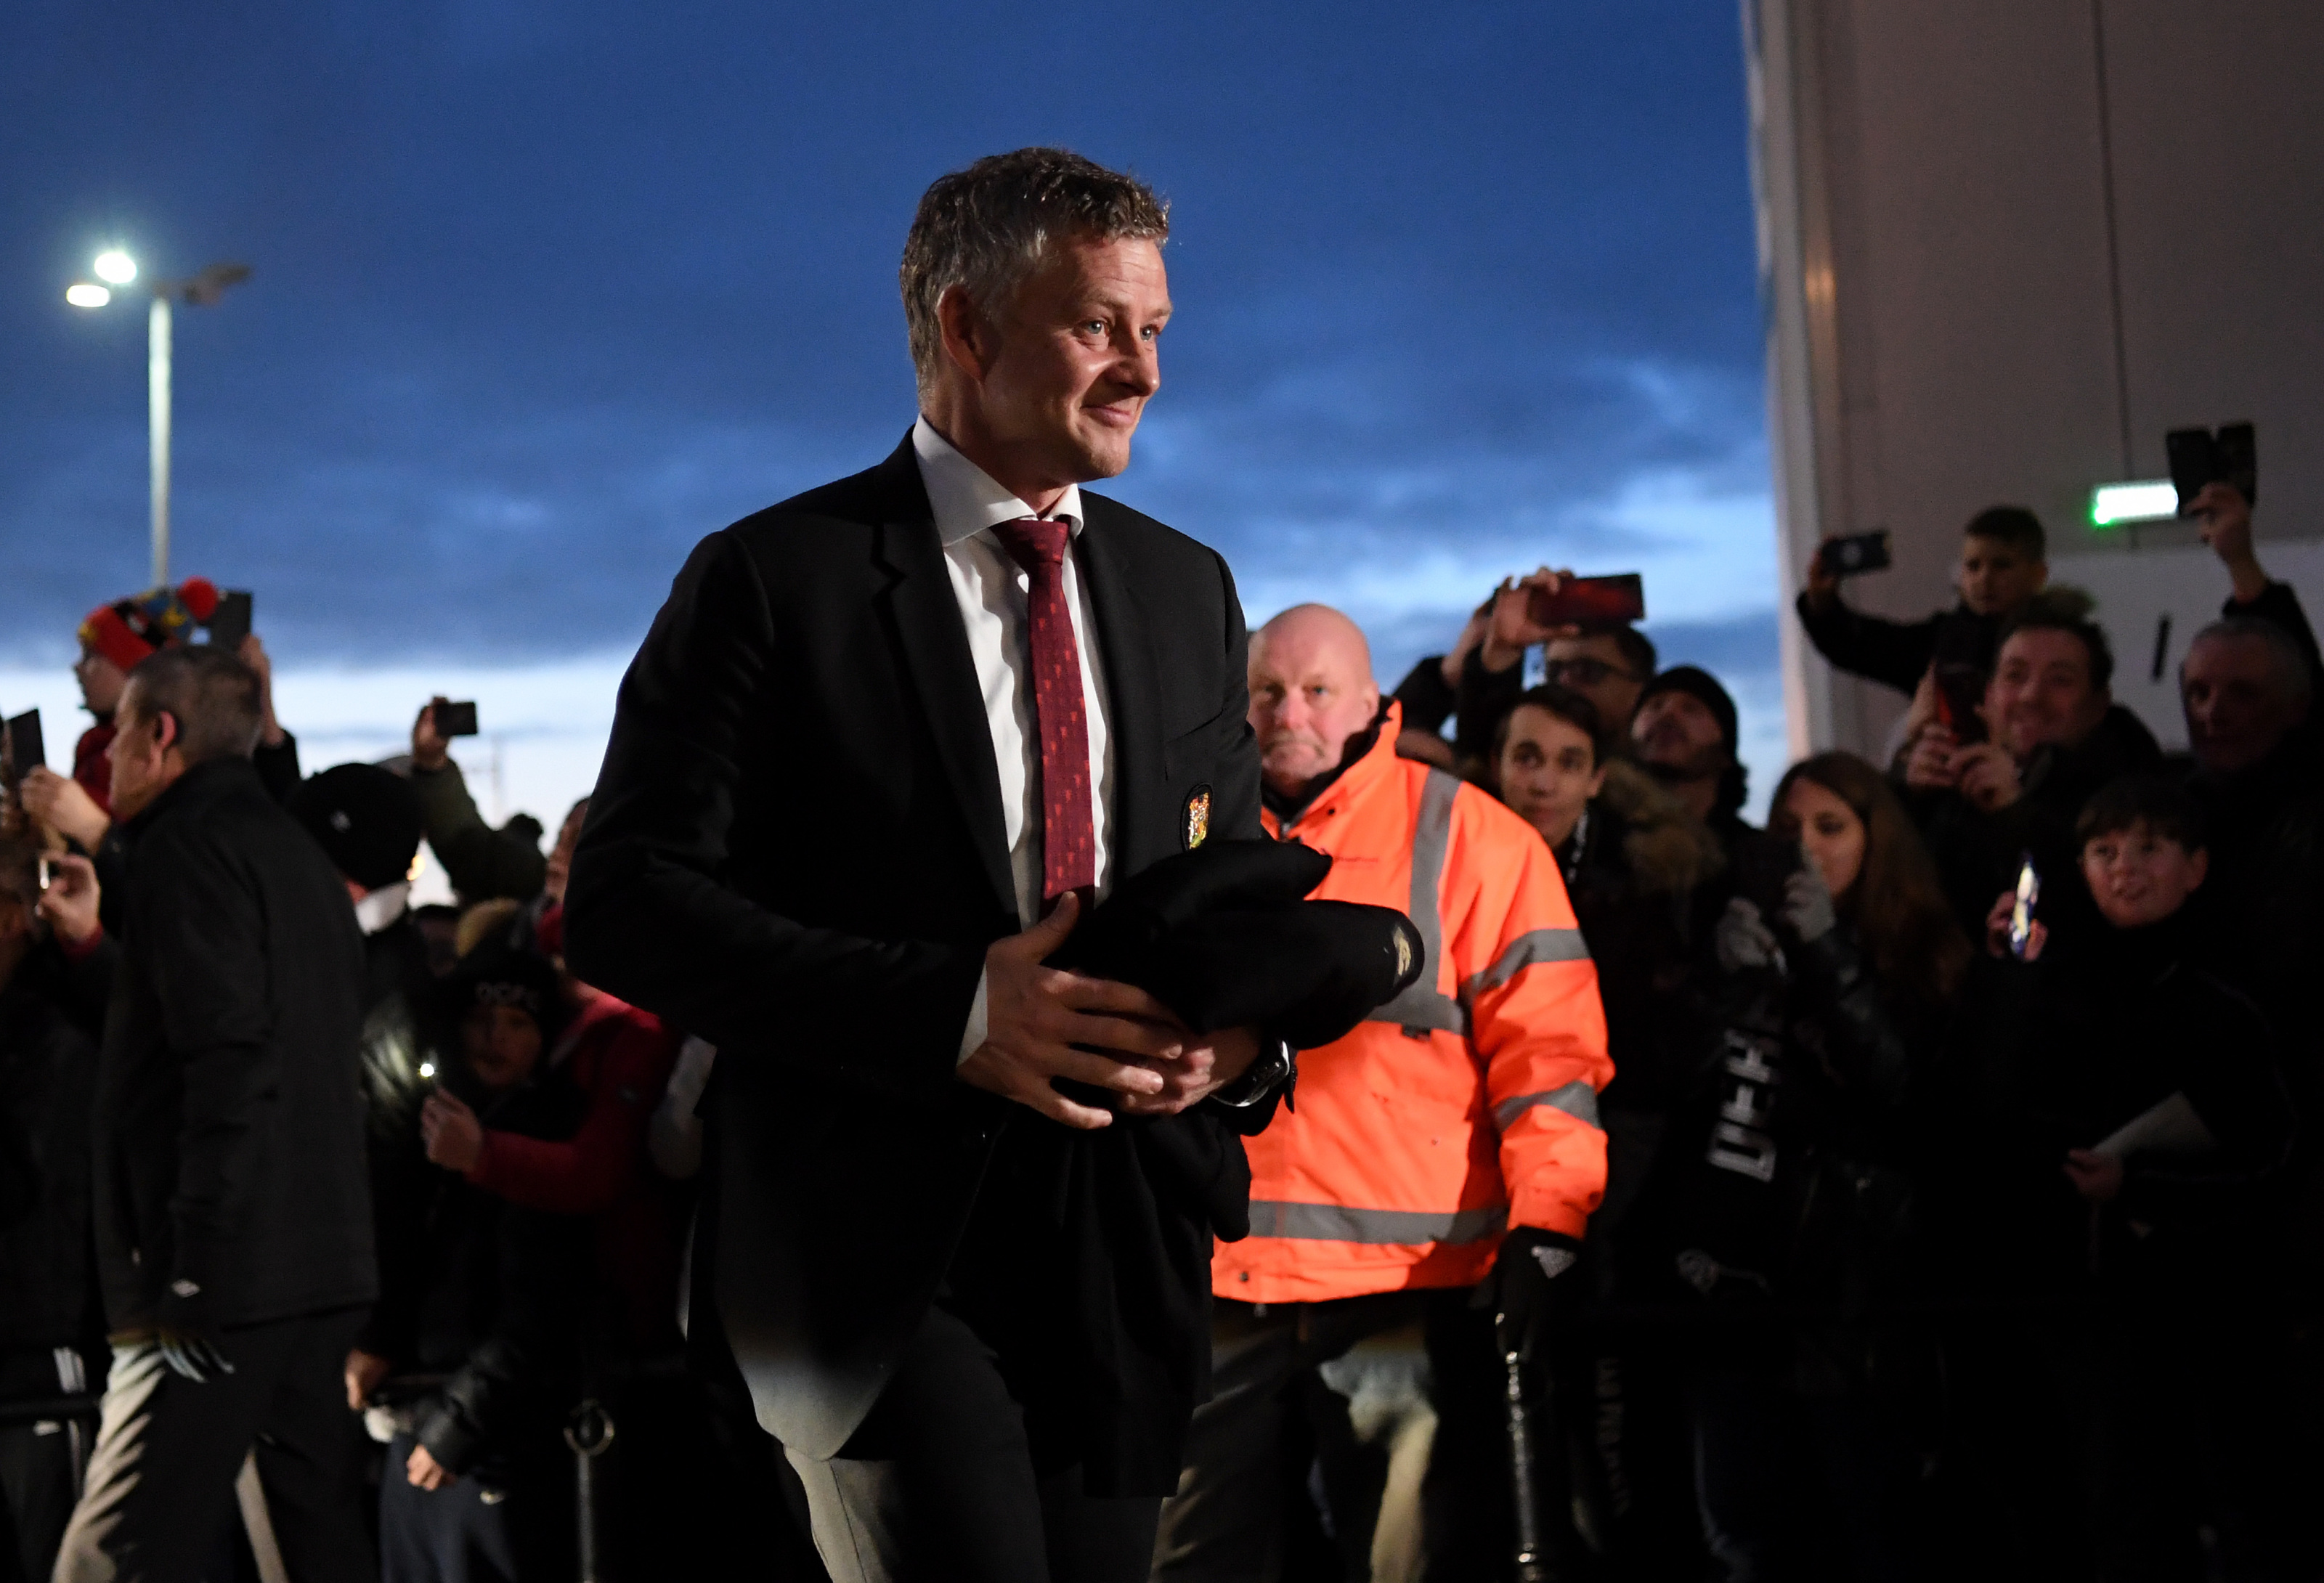 Solskjaer makes a surprising demand of his Manchester United players